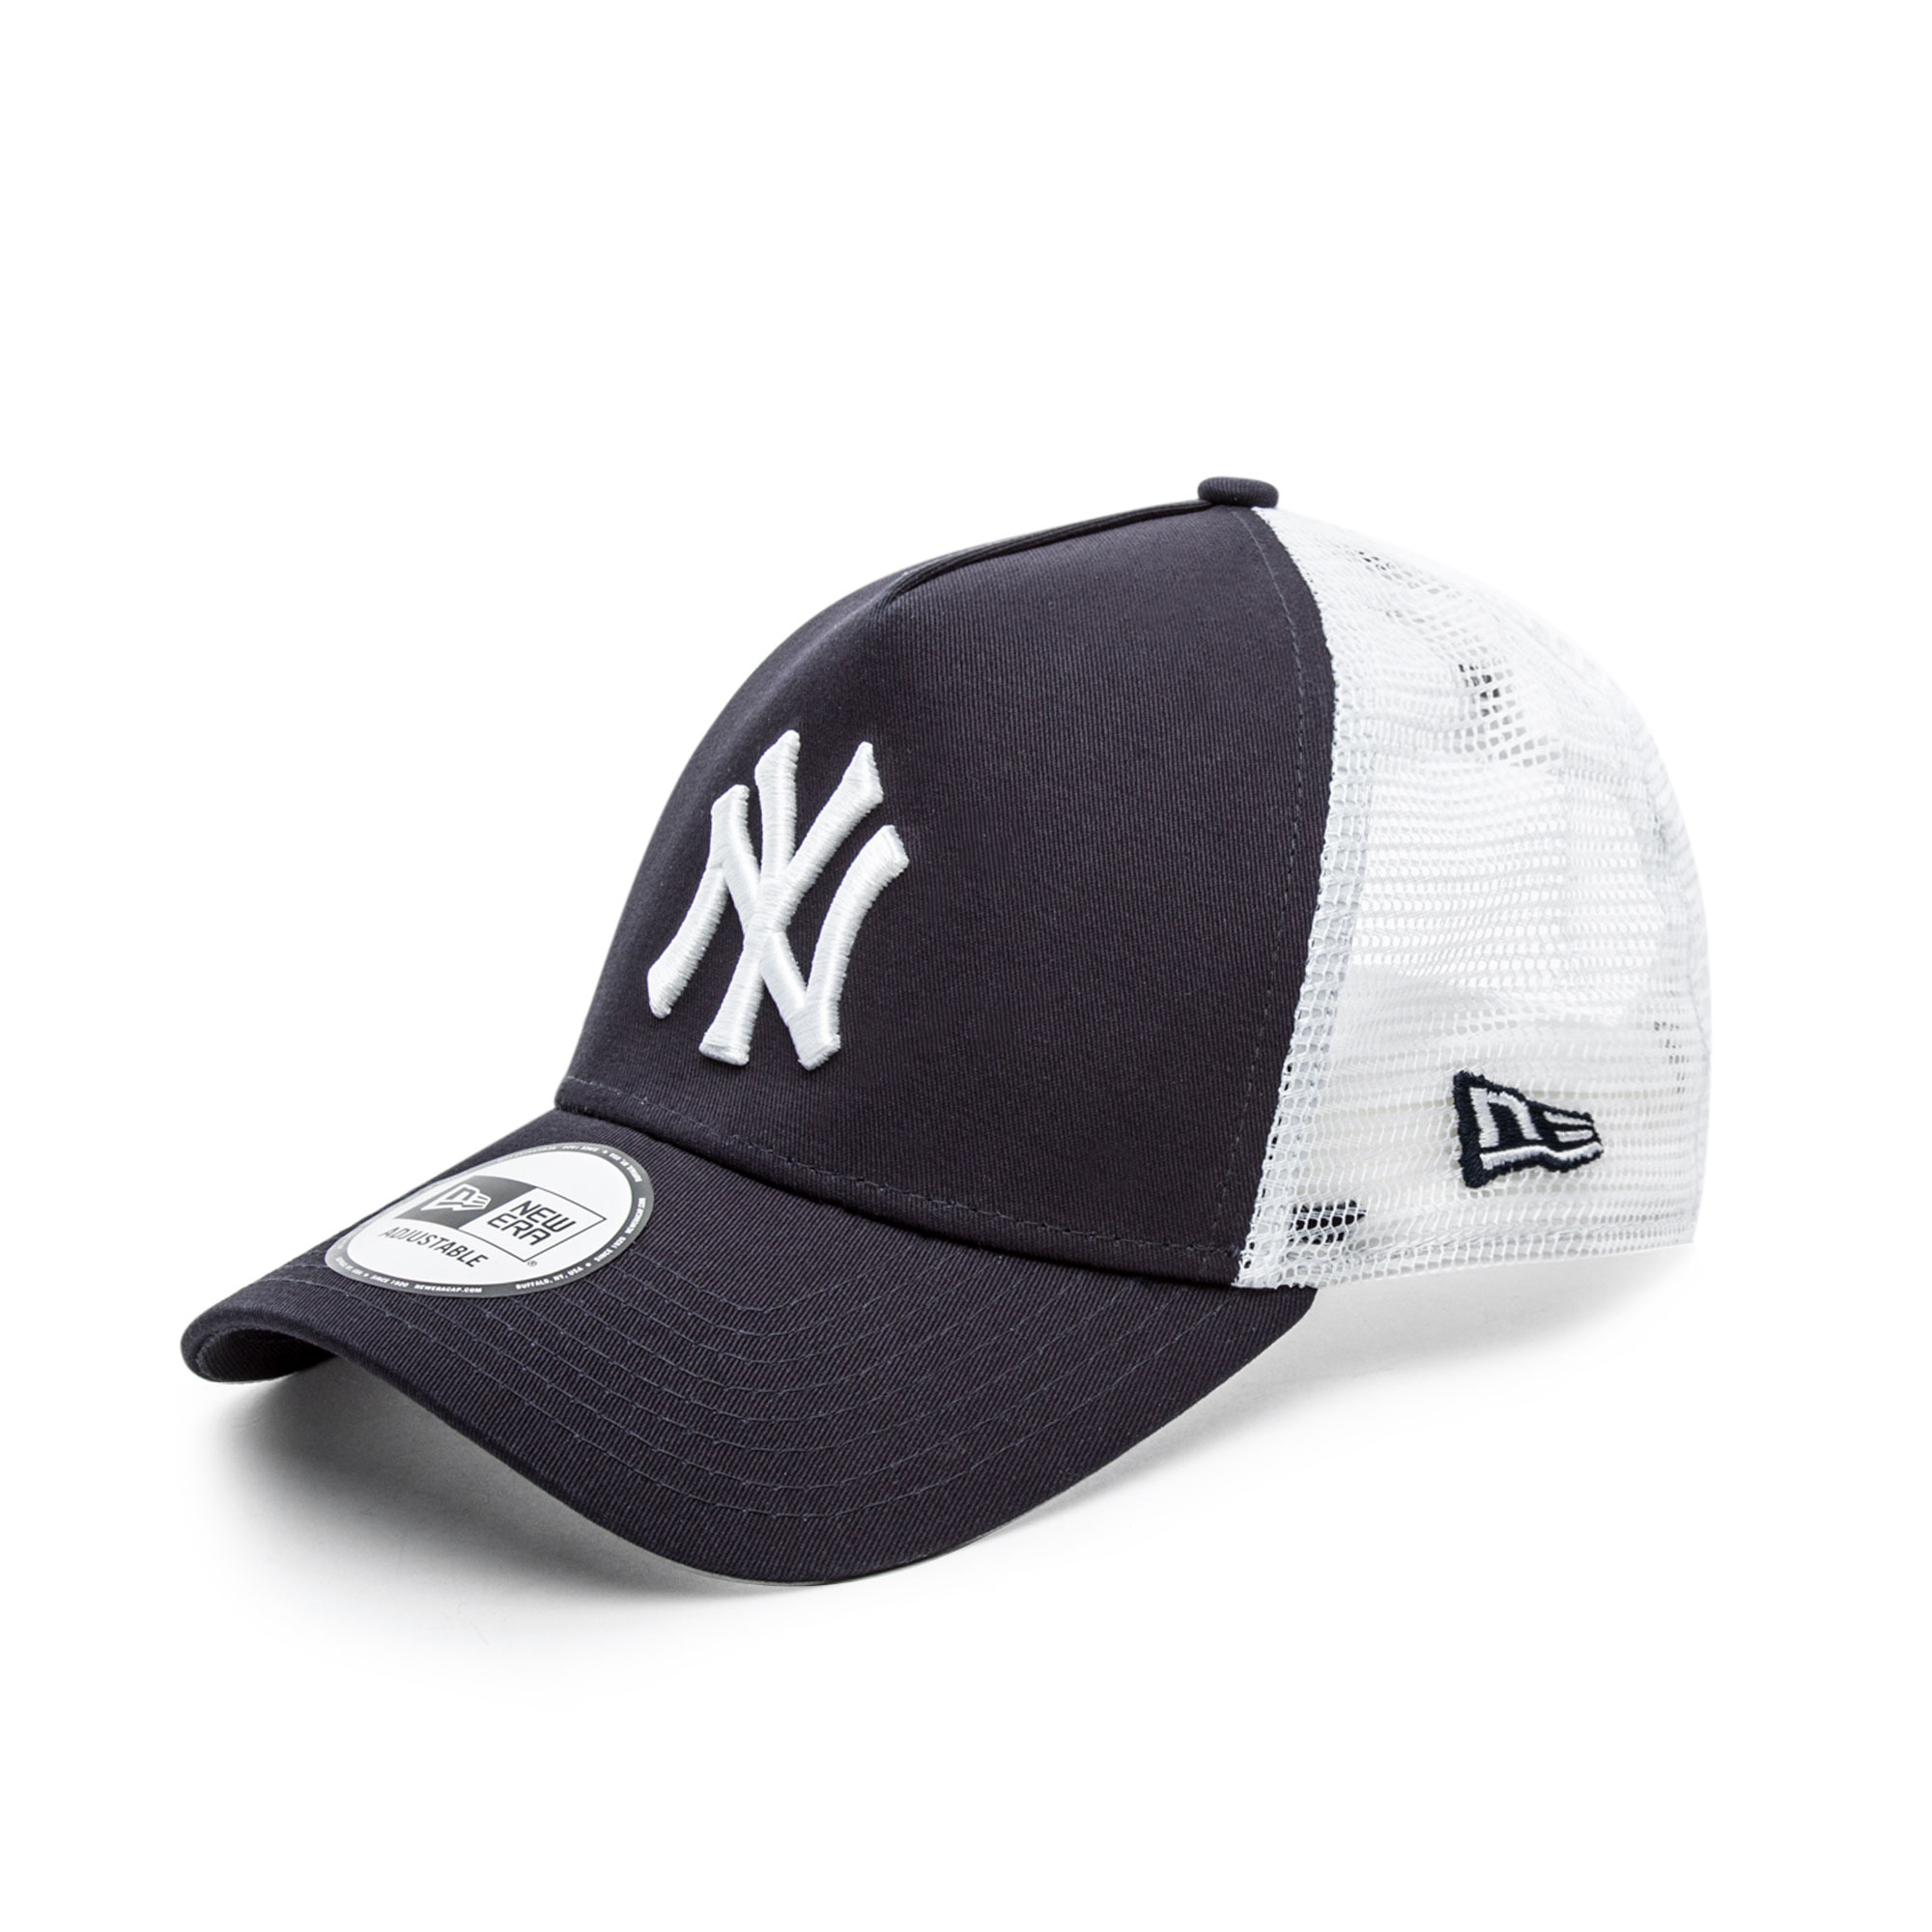 New Era New York Yankees Unisex Siyah Şapka.11588489.-